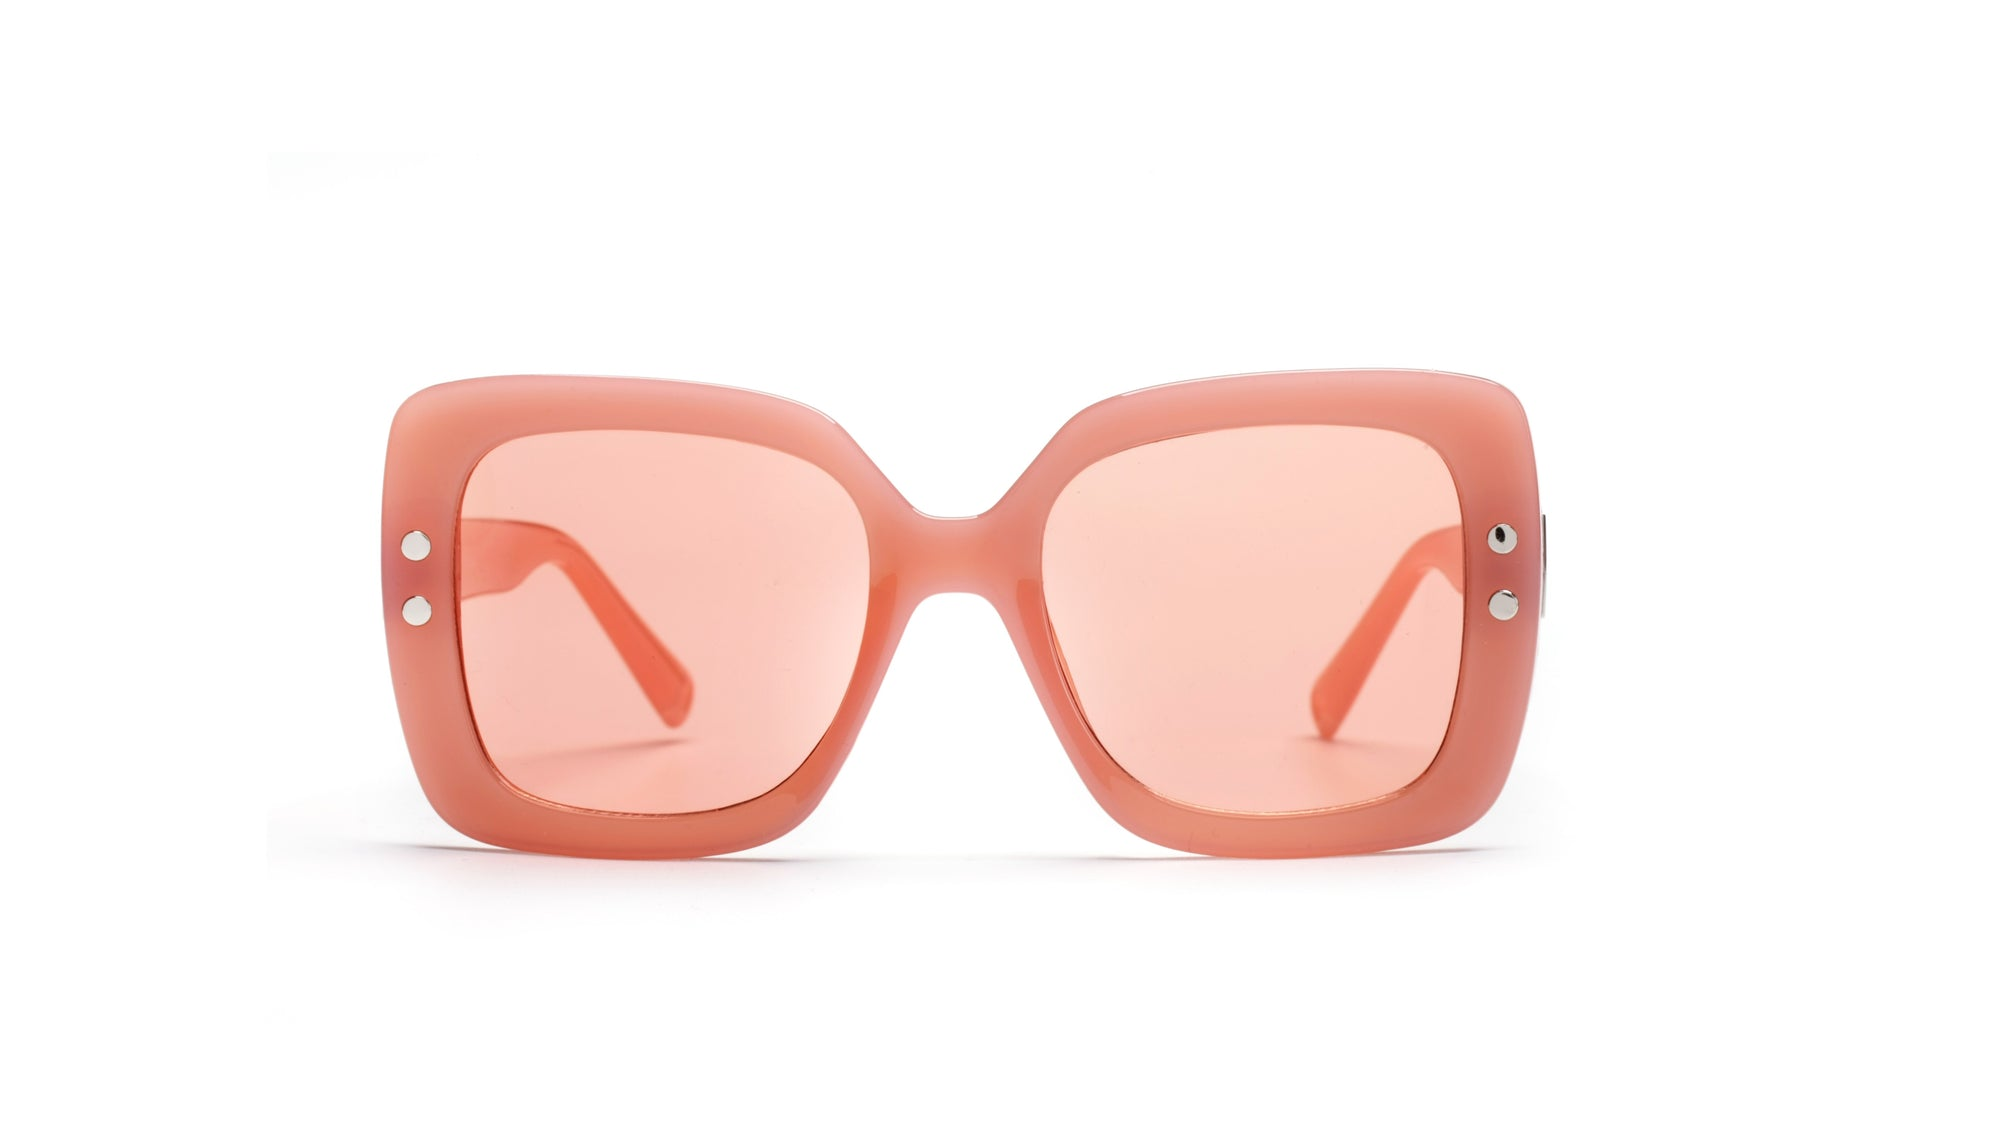 S2083 - Women Square Fashion Sunglasses - Wholesale Sunglasses and glasses